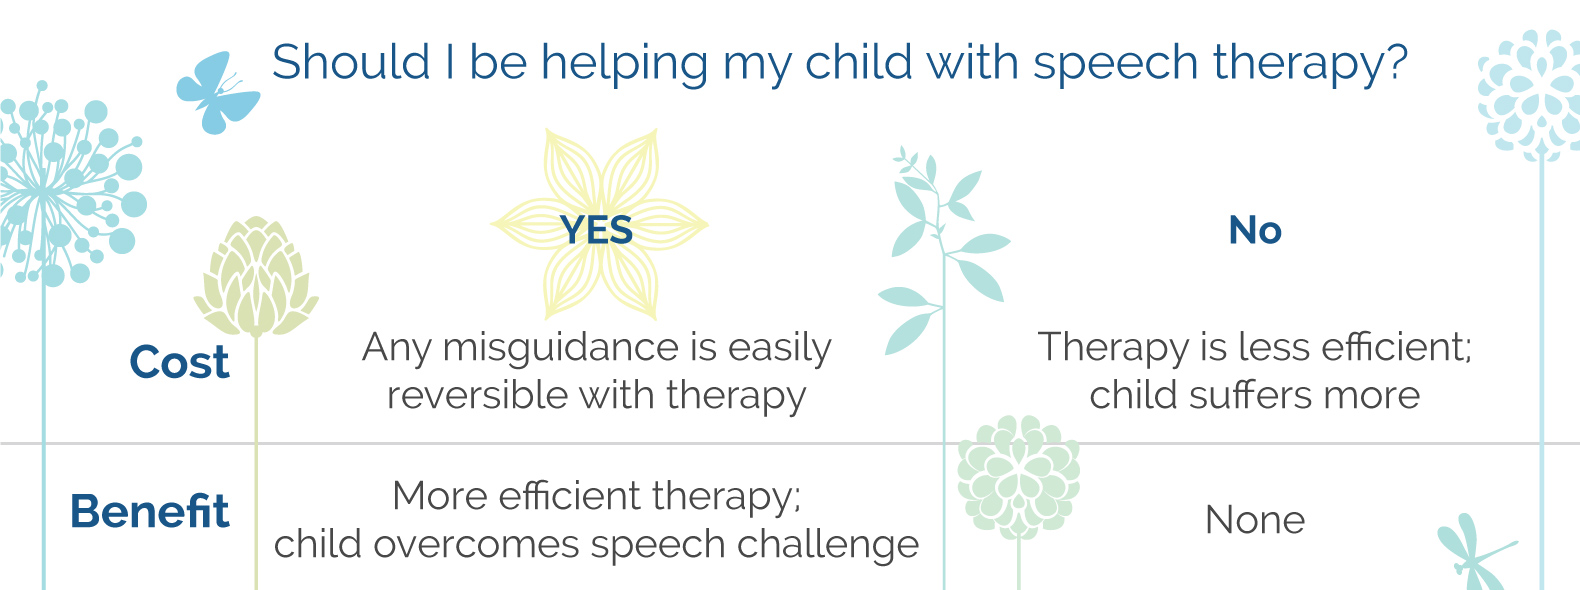 how can a speech therapist help a child Medication or special types of behavioral therapy can help if your child has behavior problems from a delay you can also work with a therapist to learn how to encourage good social and emotional.